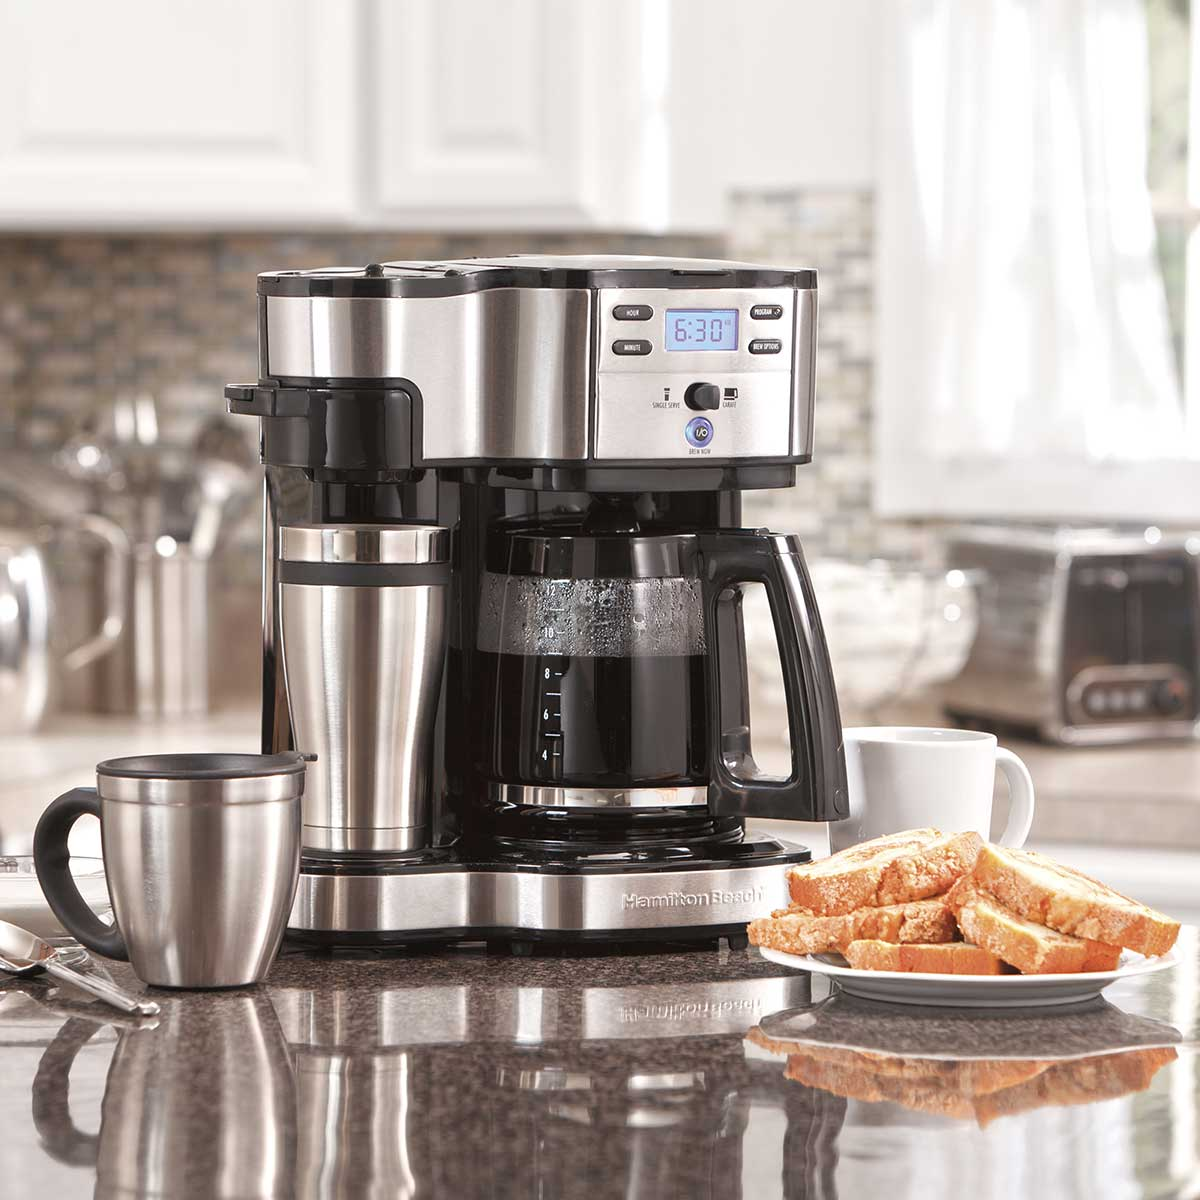 Hamilton Beach 2 Way Coffee Maker With 12 Cup Carafe Pod Brewing